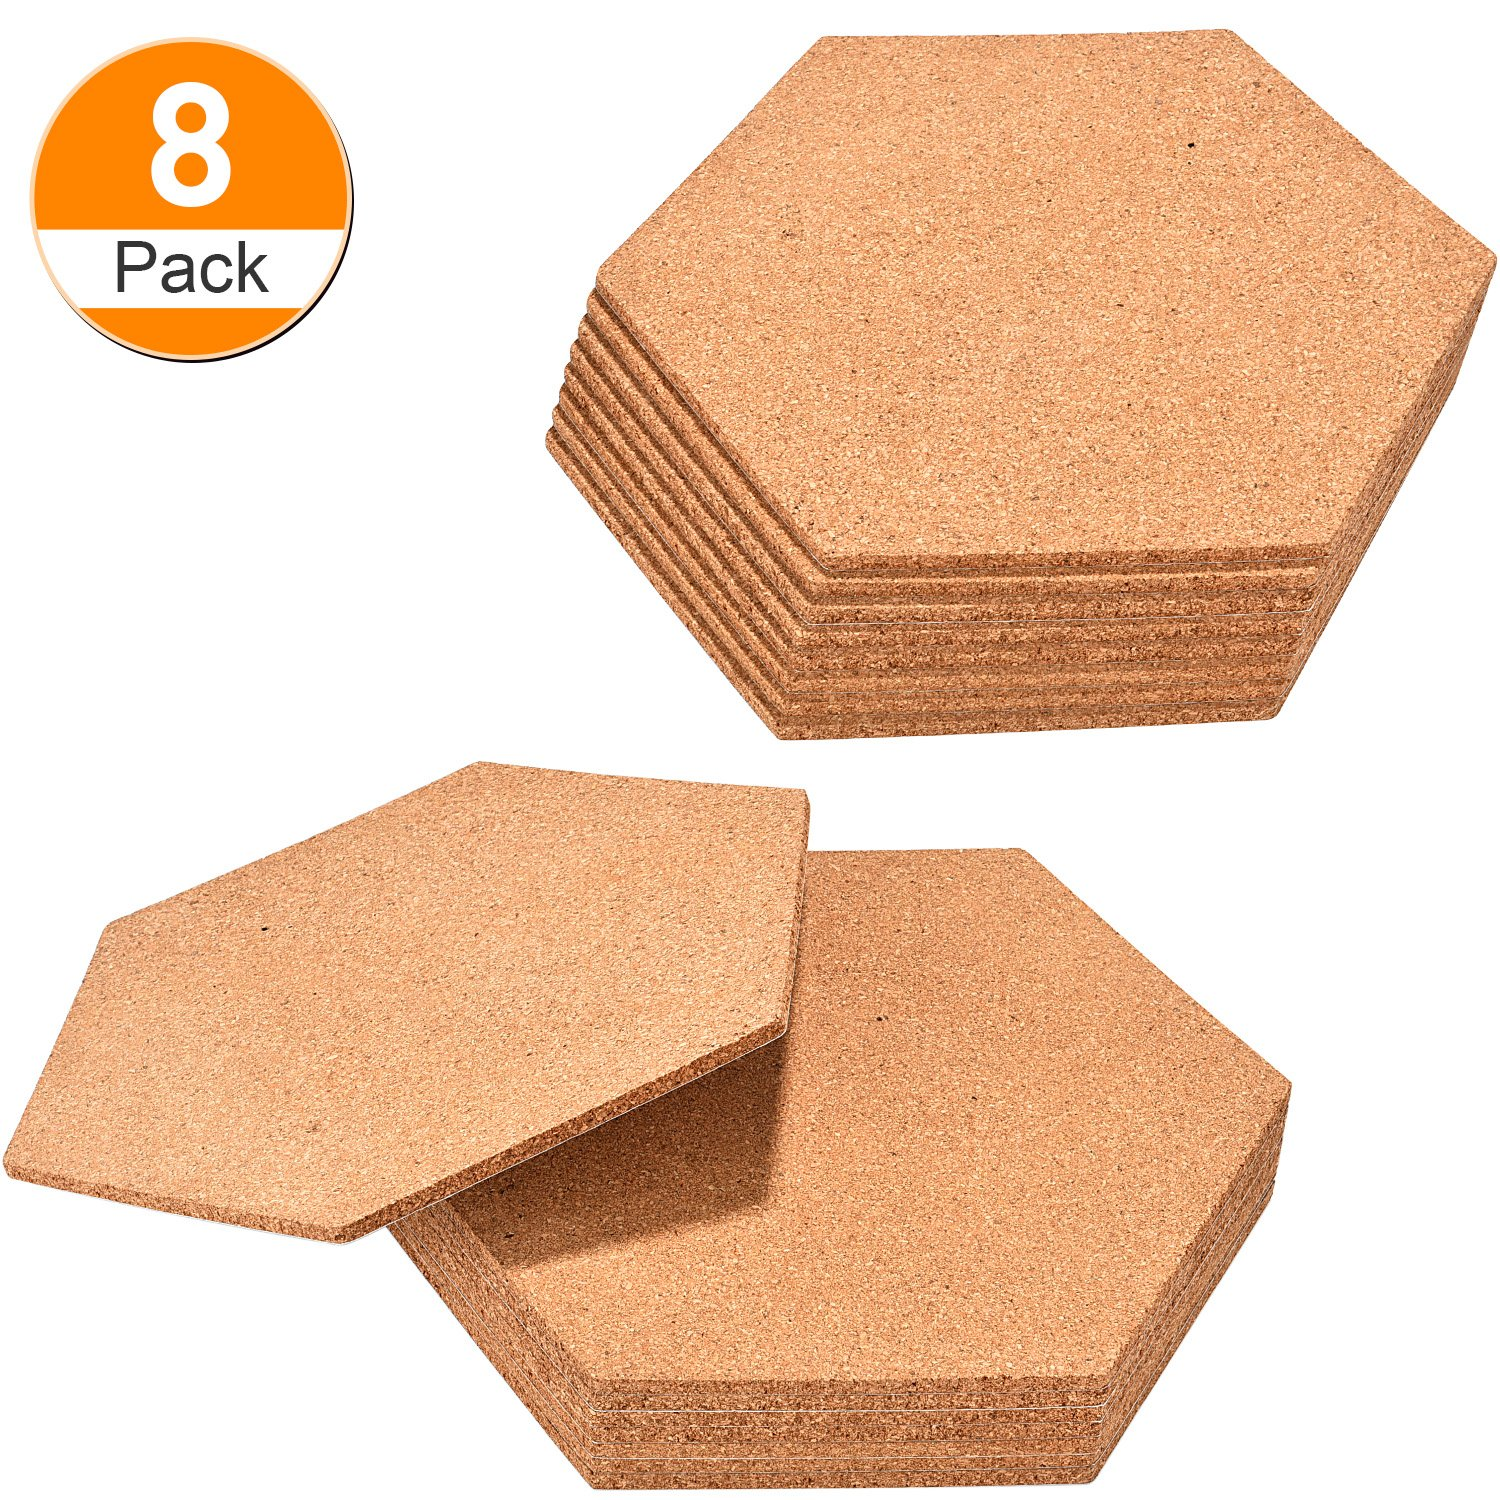 Maxdot 8 Pack Hexagon Shape Cork Board Adhesive Bulletin Board Wood Message Billboard Frameless Picture Boards for Home Office Classroom Wall Decoration